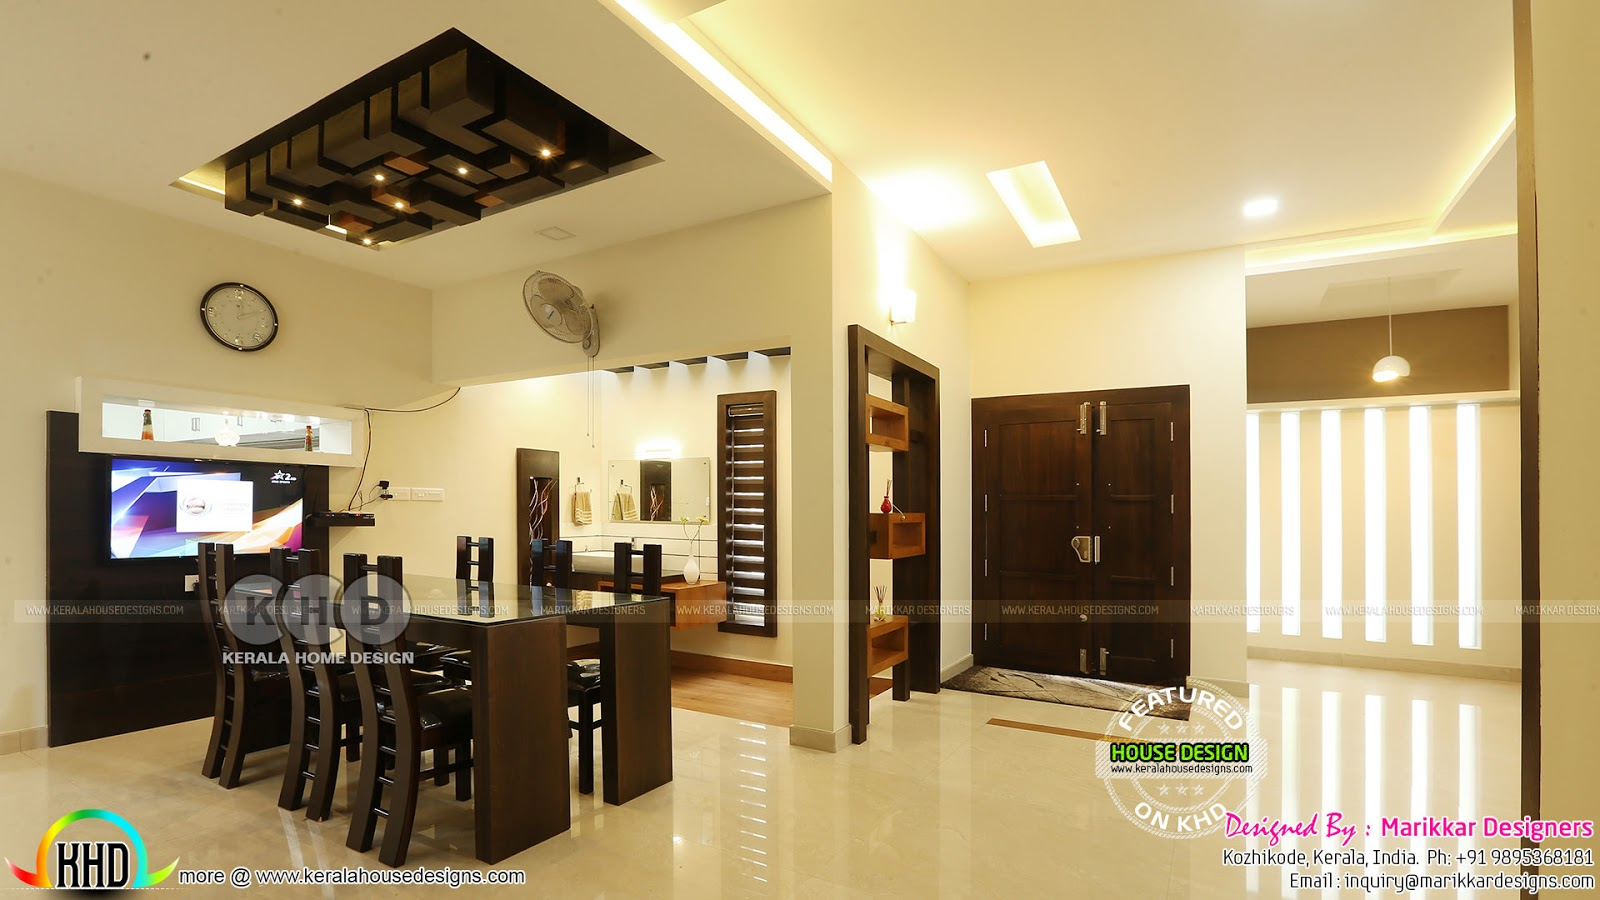 Furnished Interior And Exterior Of 4 Bedroom House Kerala Home Design And Floor Plans 8000 Houses